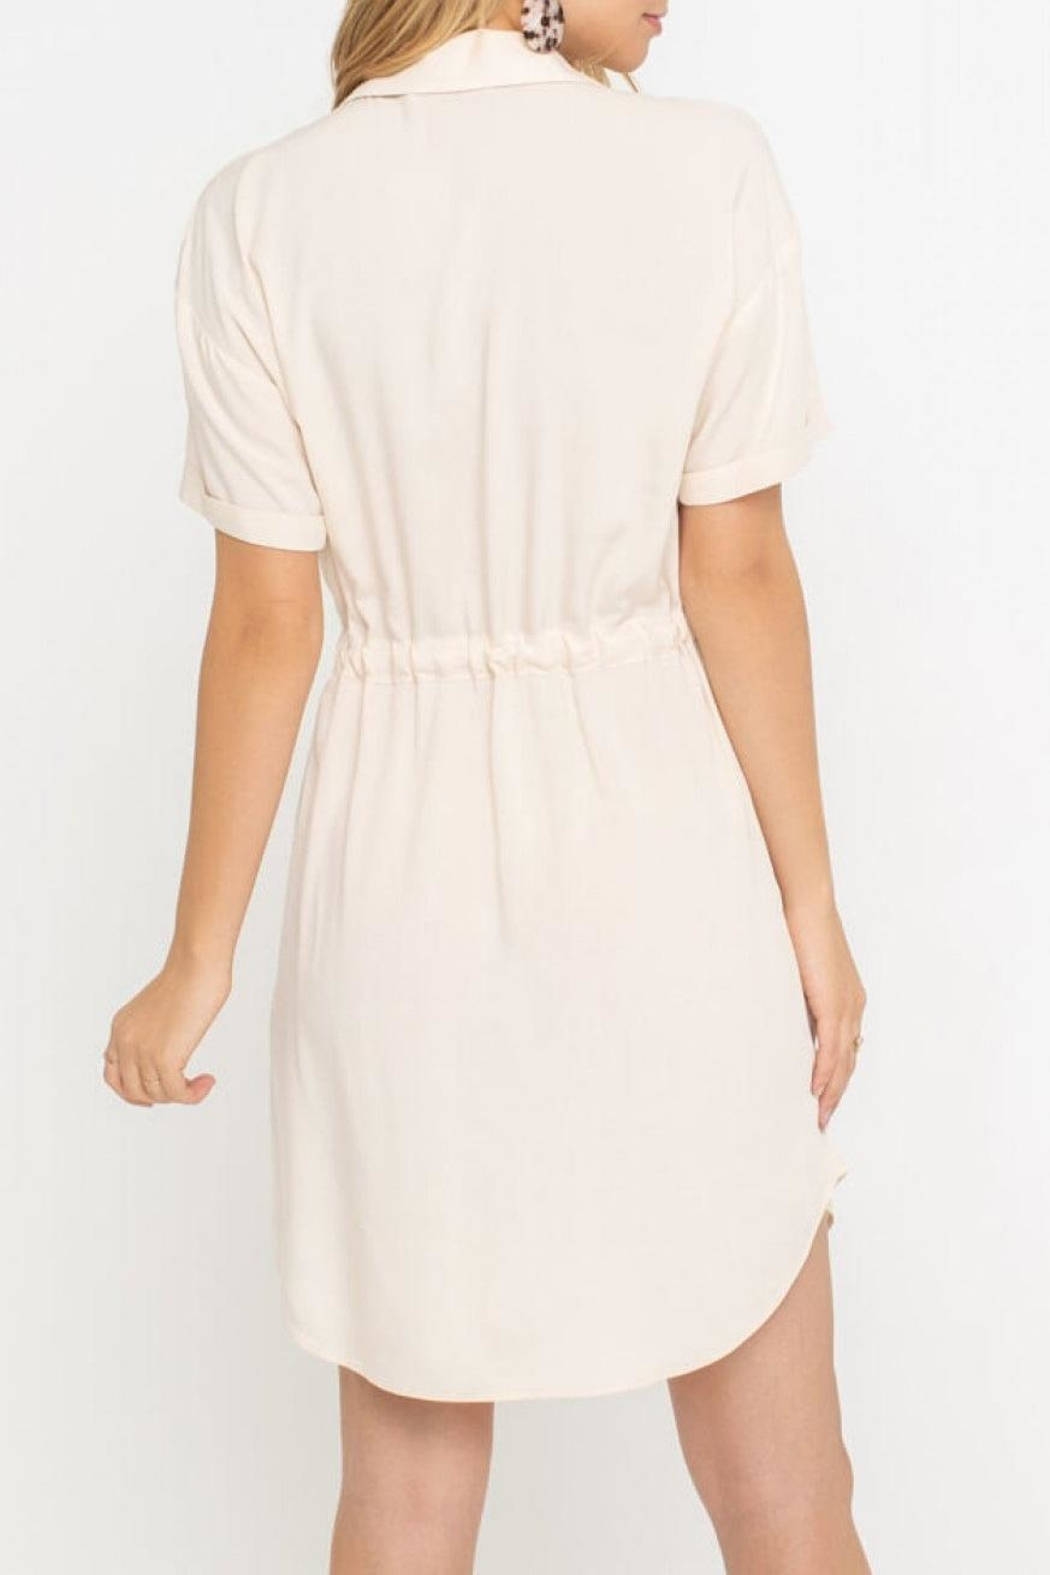 Lush Clothing  Drawstring Shirt Dress - Side Cropped Image